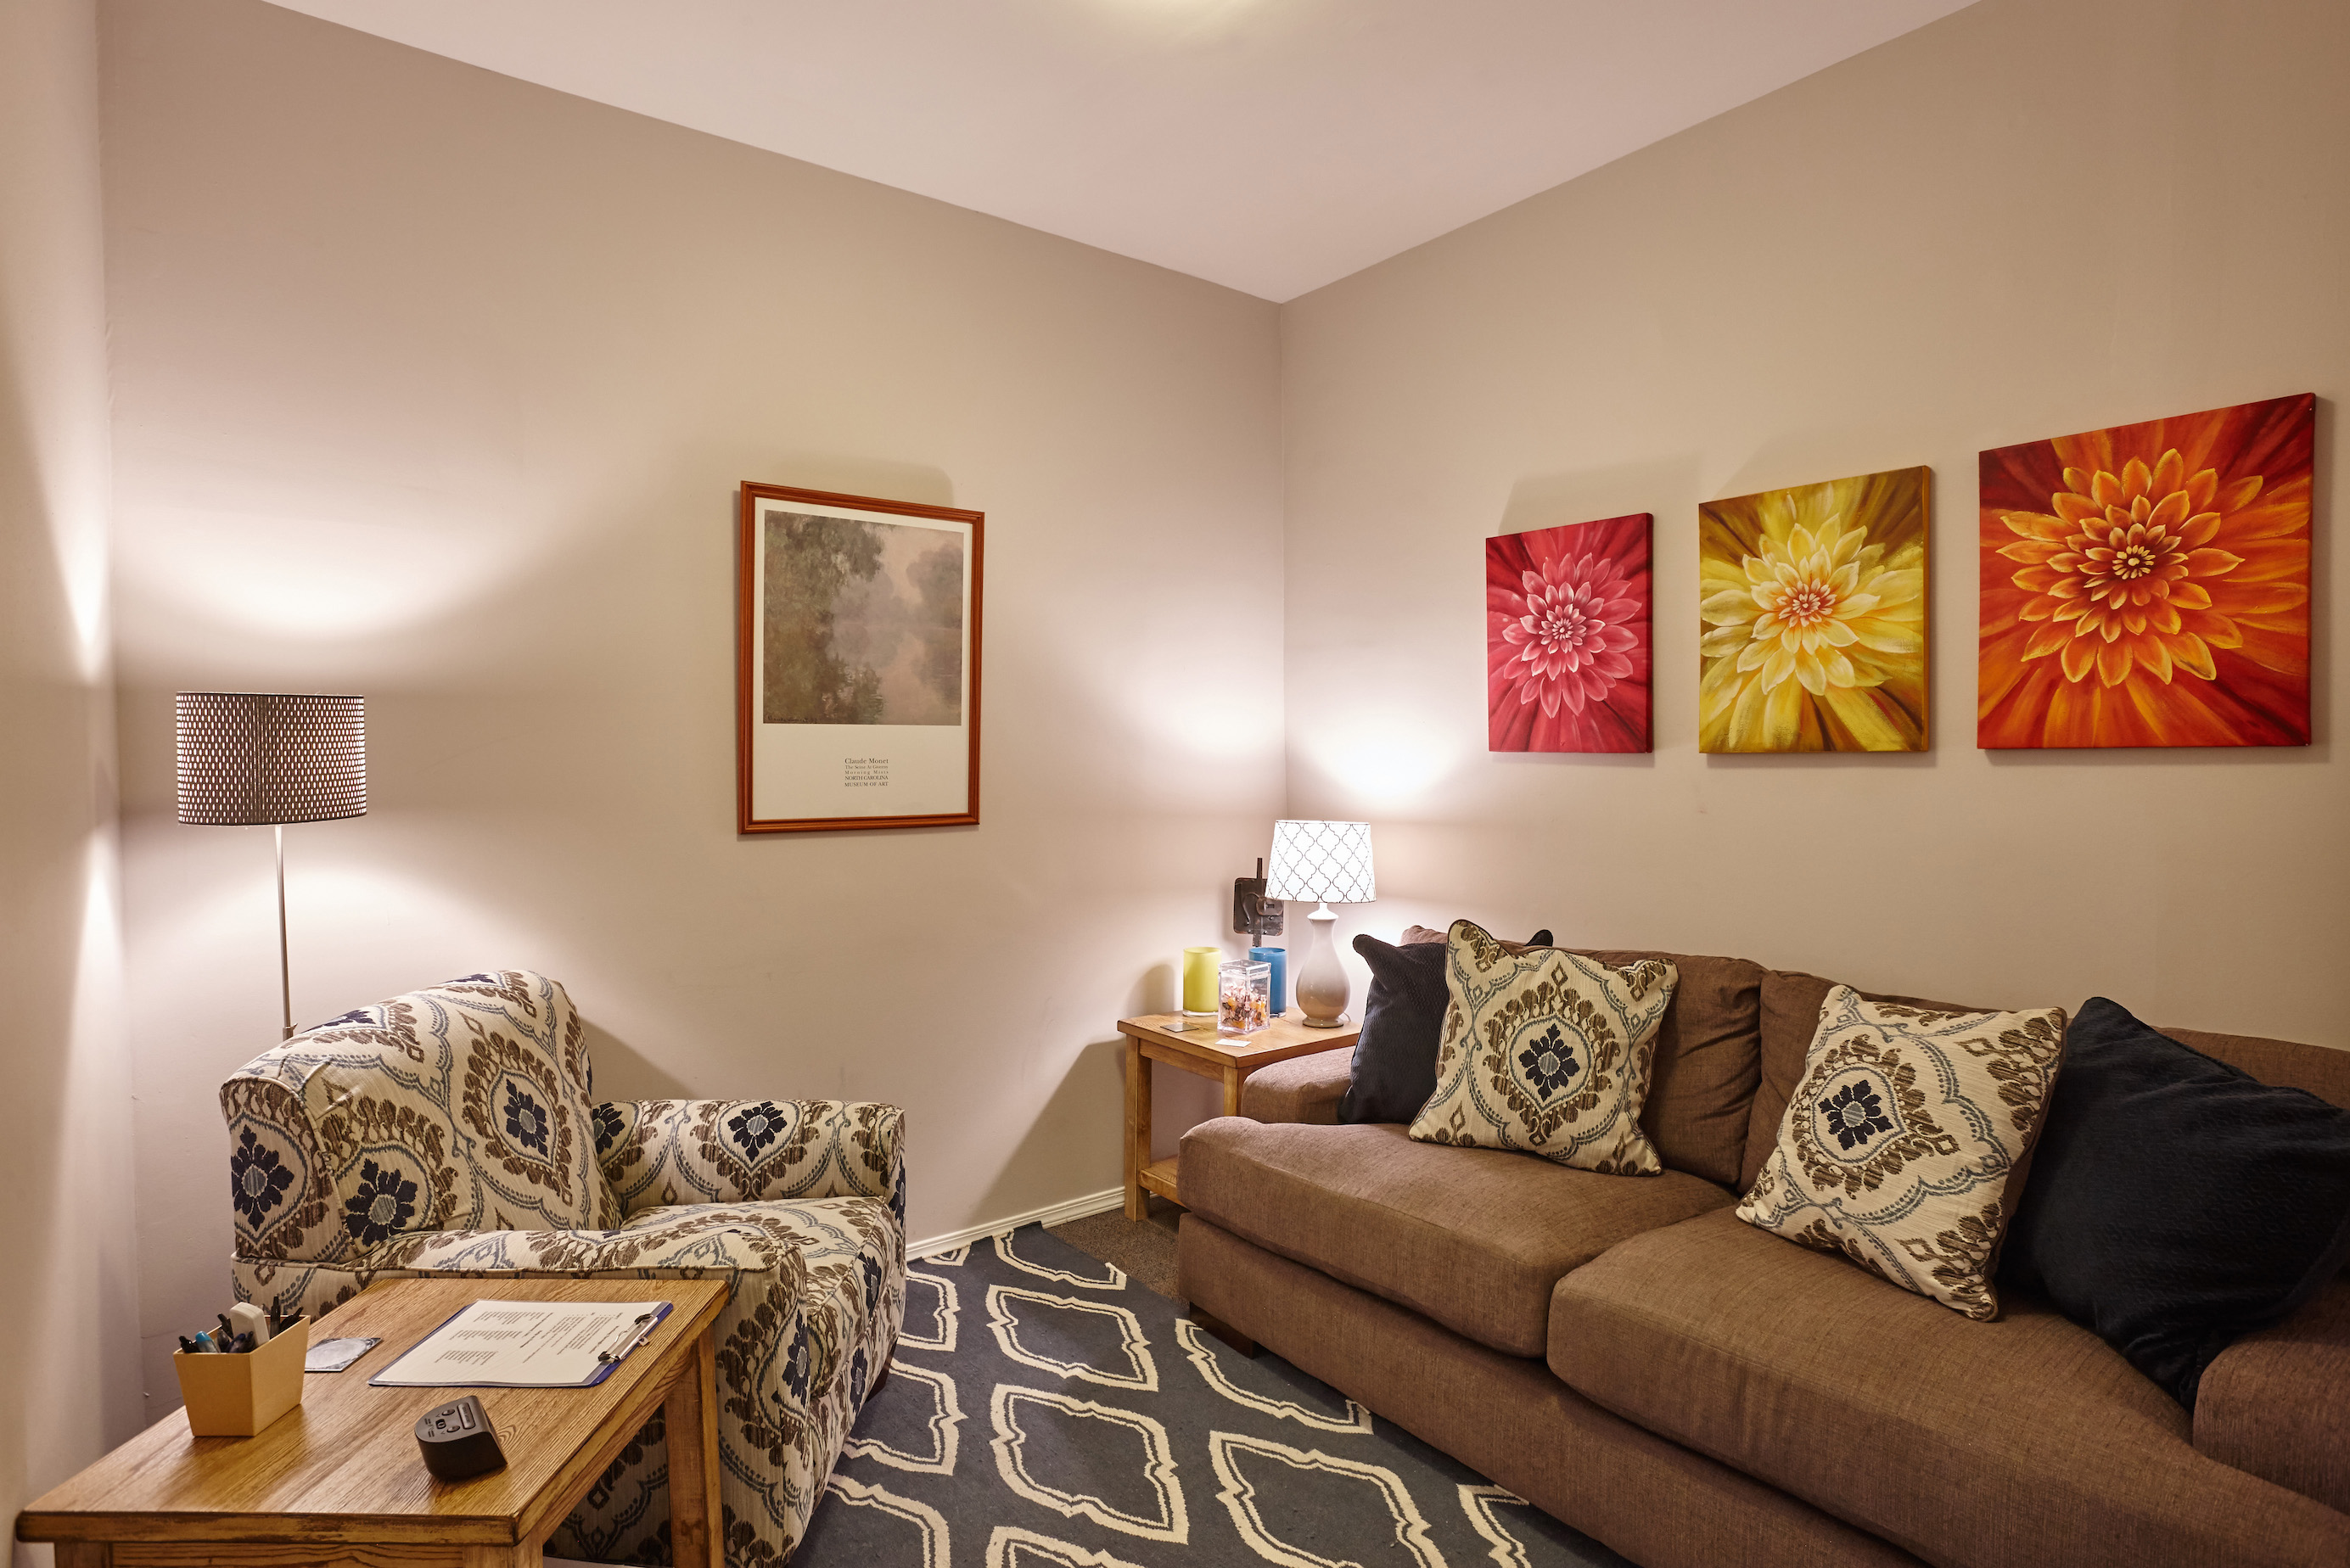 South Kingshighway Therapy Room